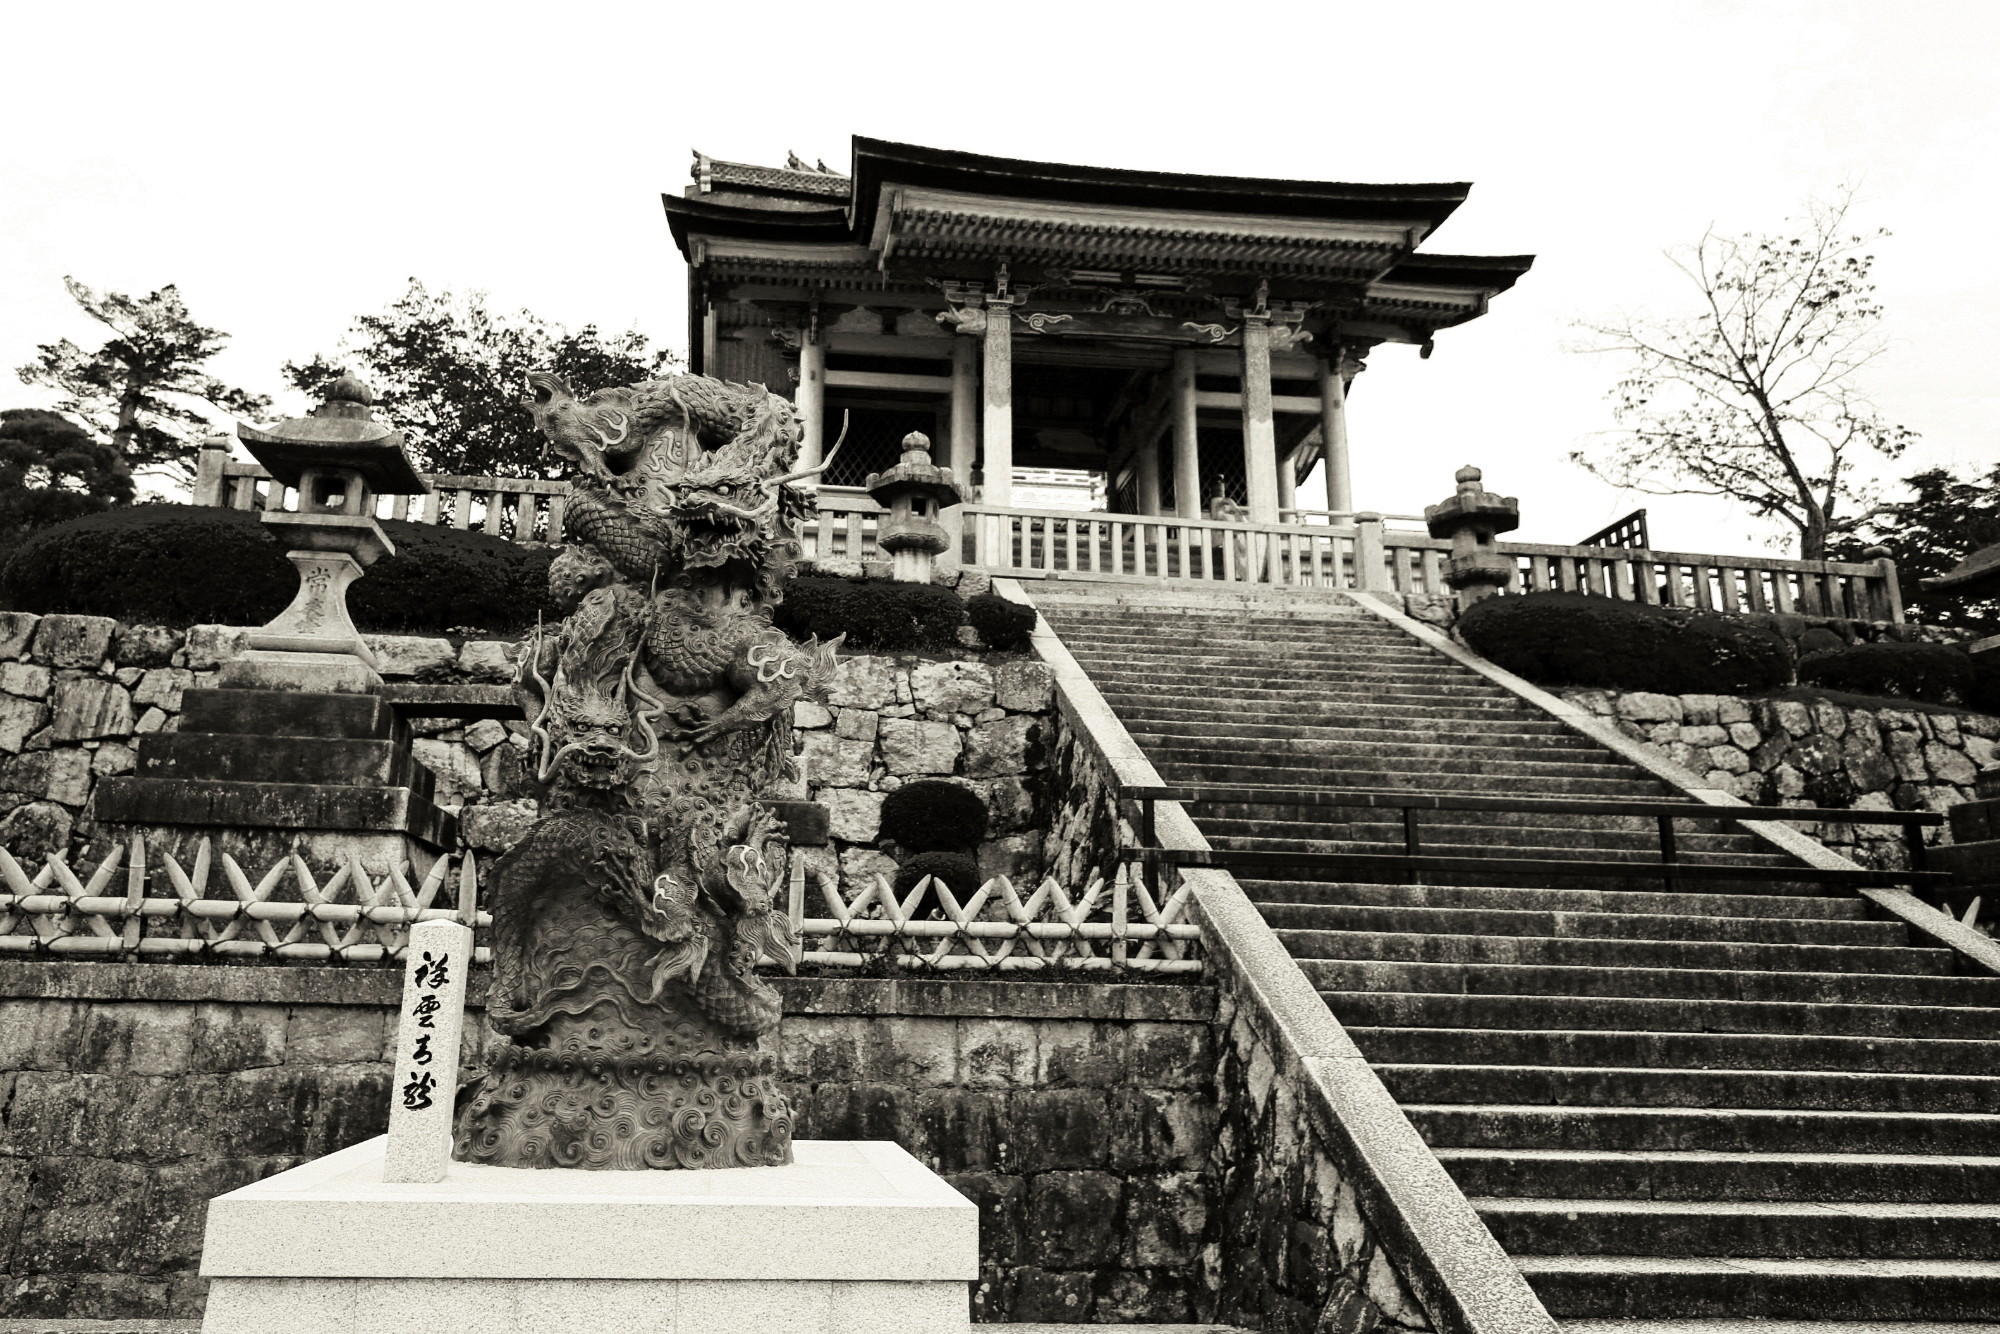 Photograph of a temple taken in Kyoto, Japan. Image looks very old, with sepia tones. There's a dragon statue in the front of a very old looking temple